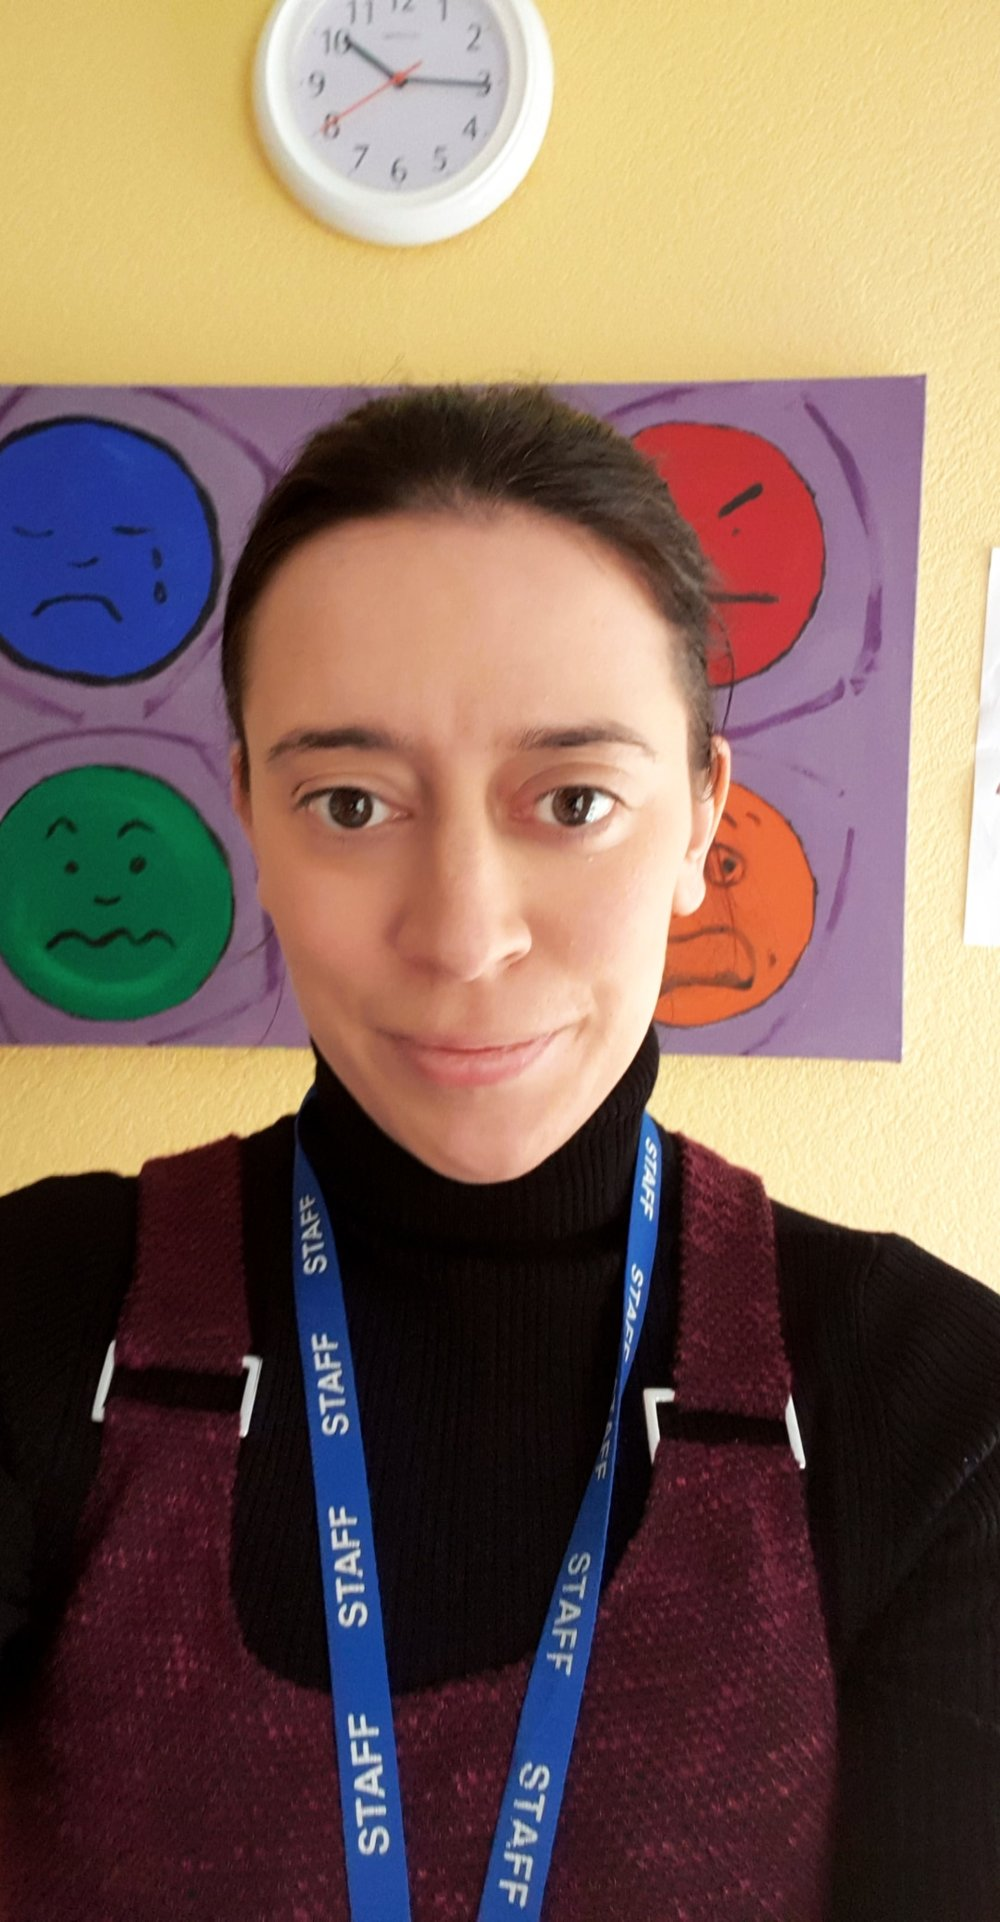 Esme Ford - Family Liaison OfficerSupporting families to achieve the best outcomes for their children.Works:Thursdays 8:30am - 4:30pm.